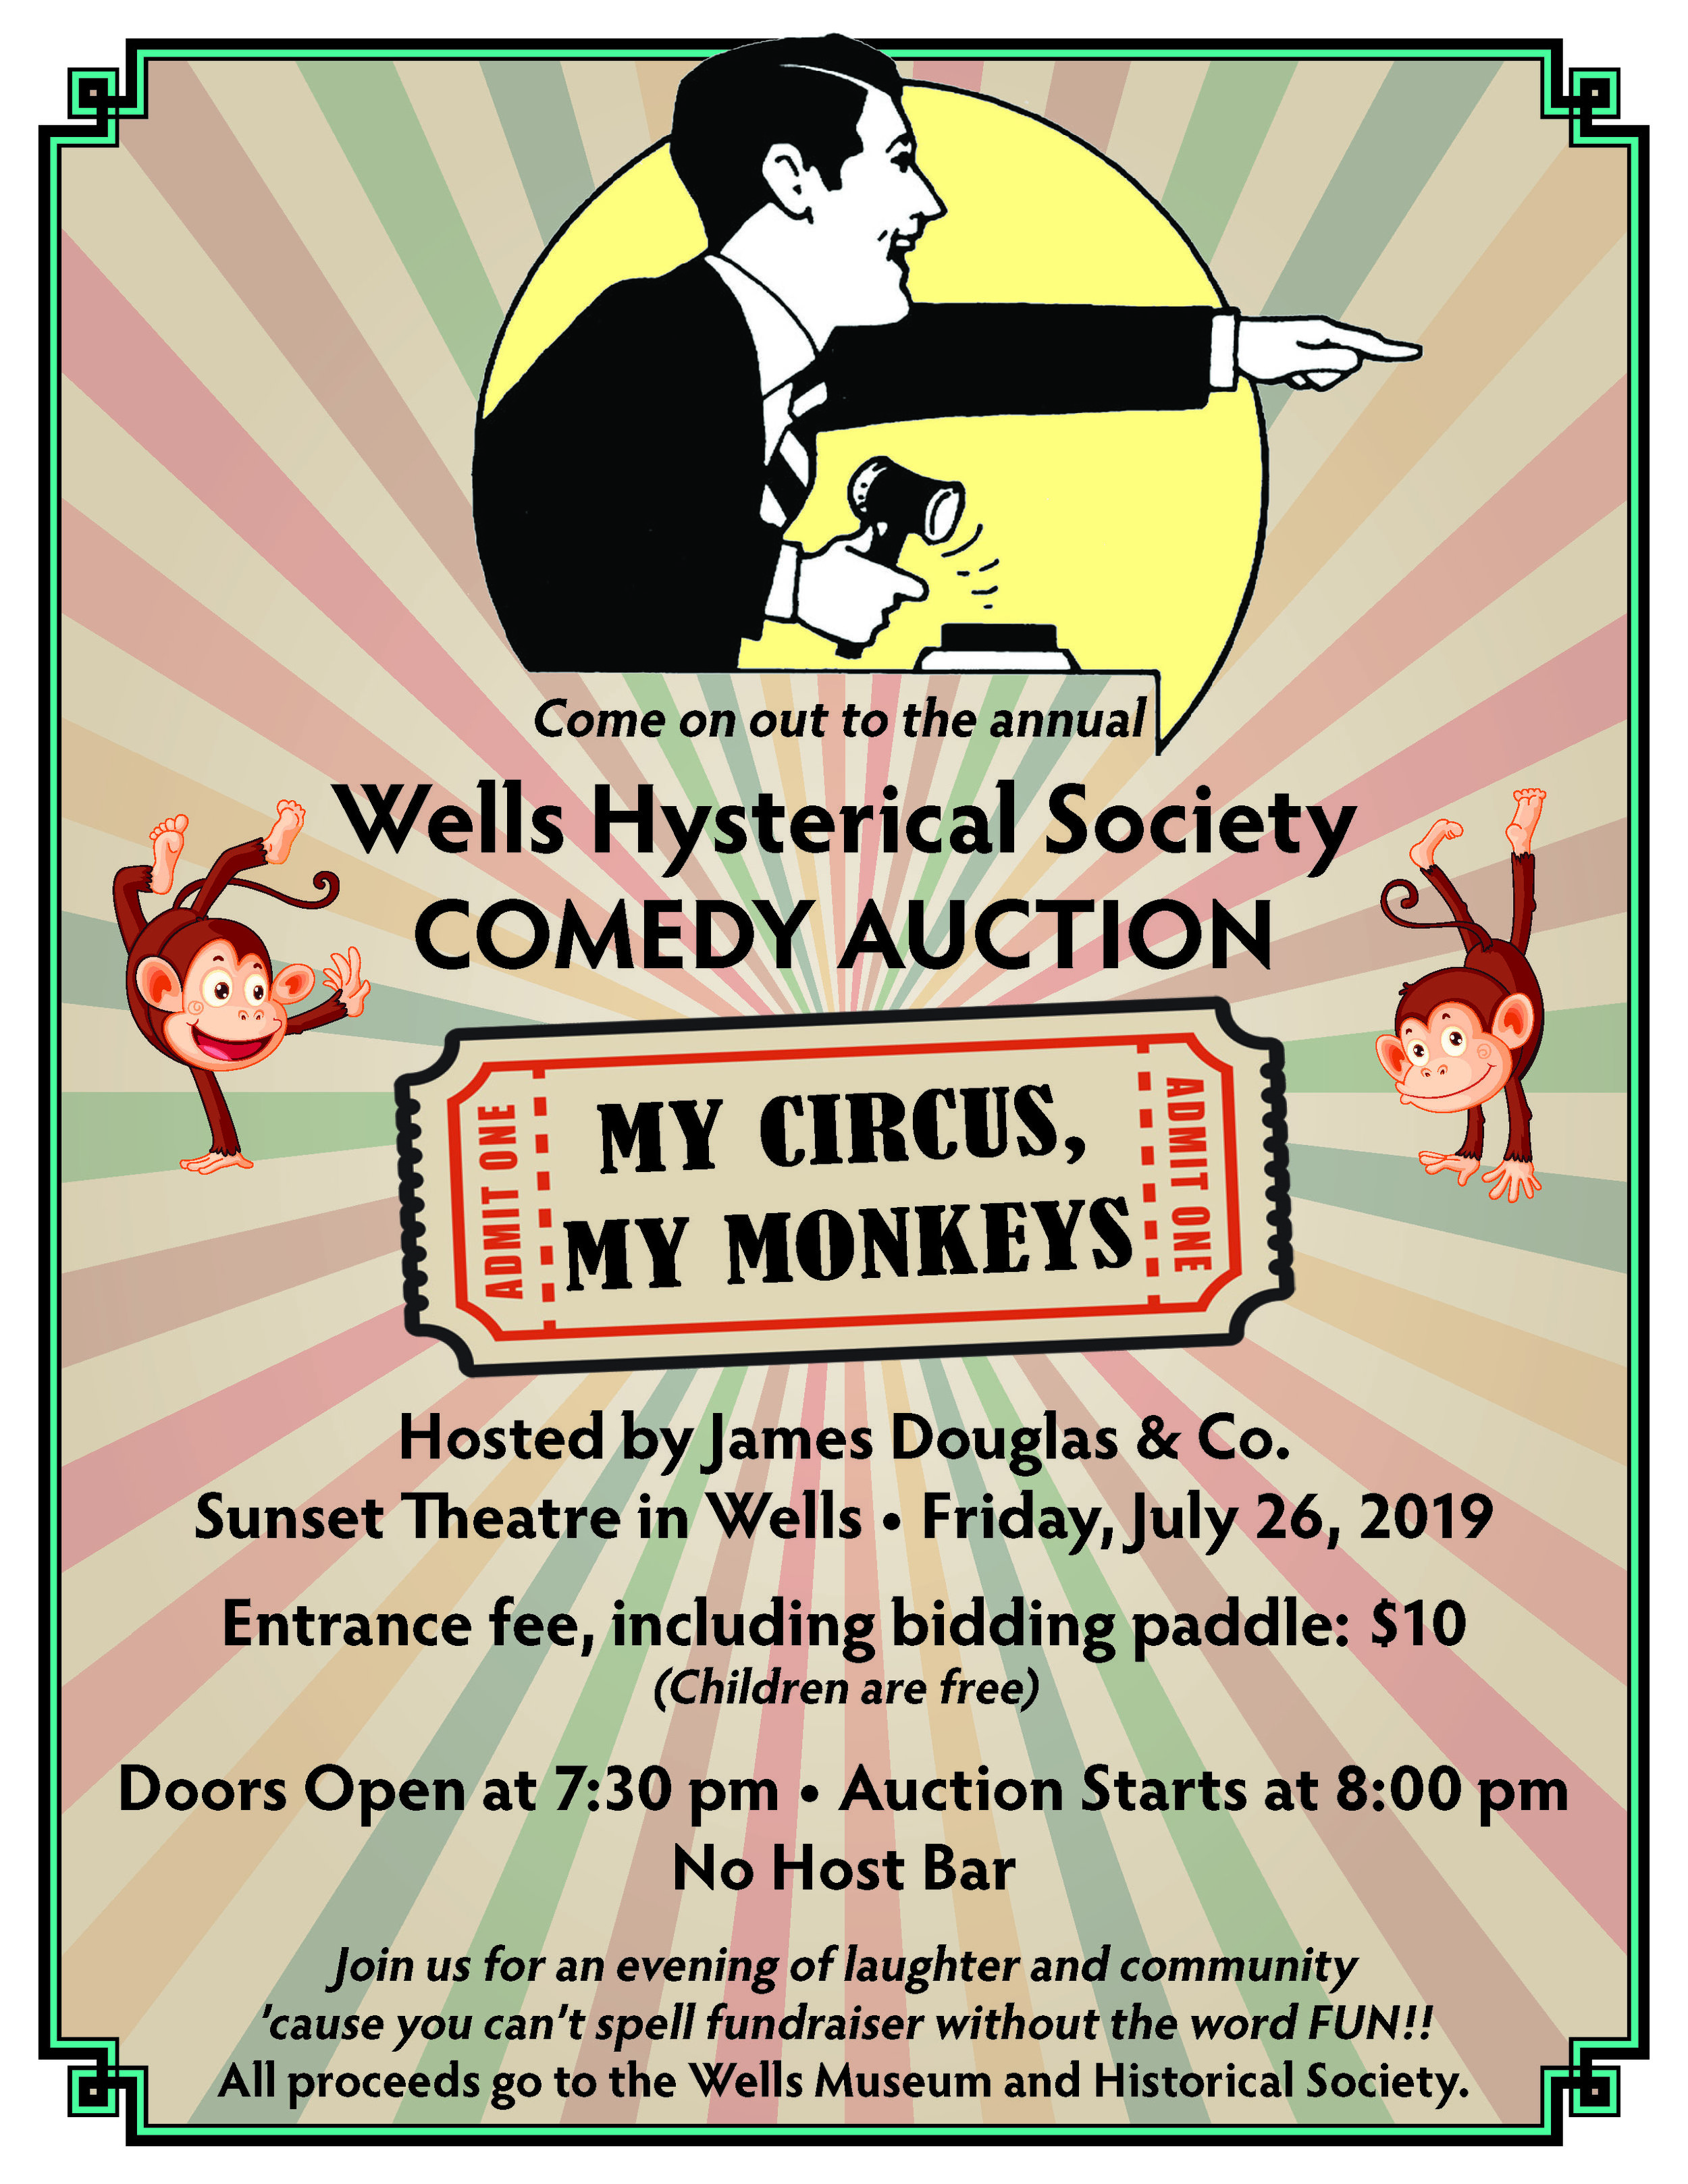 Wells Hysterical Comedy Auction • July 26 • Doors open at 7:30PM - Join us for an evening of laughter and community, 'cause you can't spell fundraiser without the word FUN!